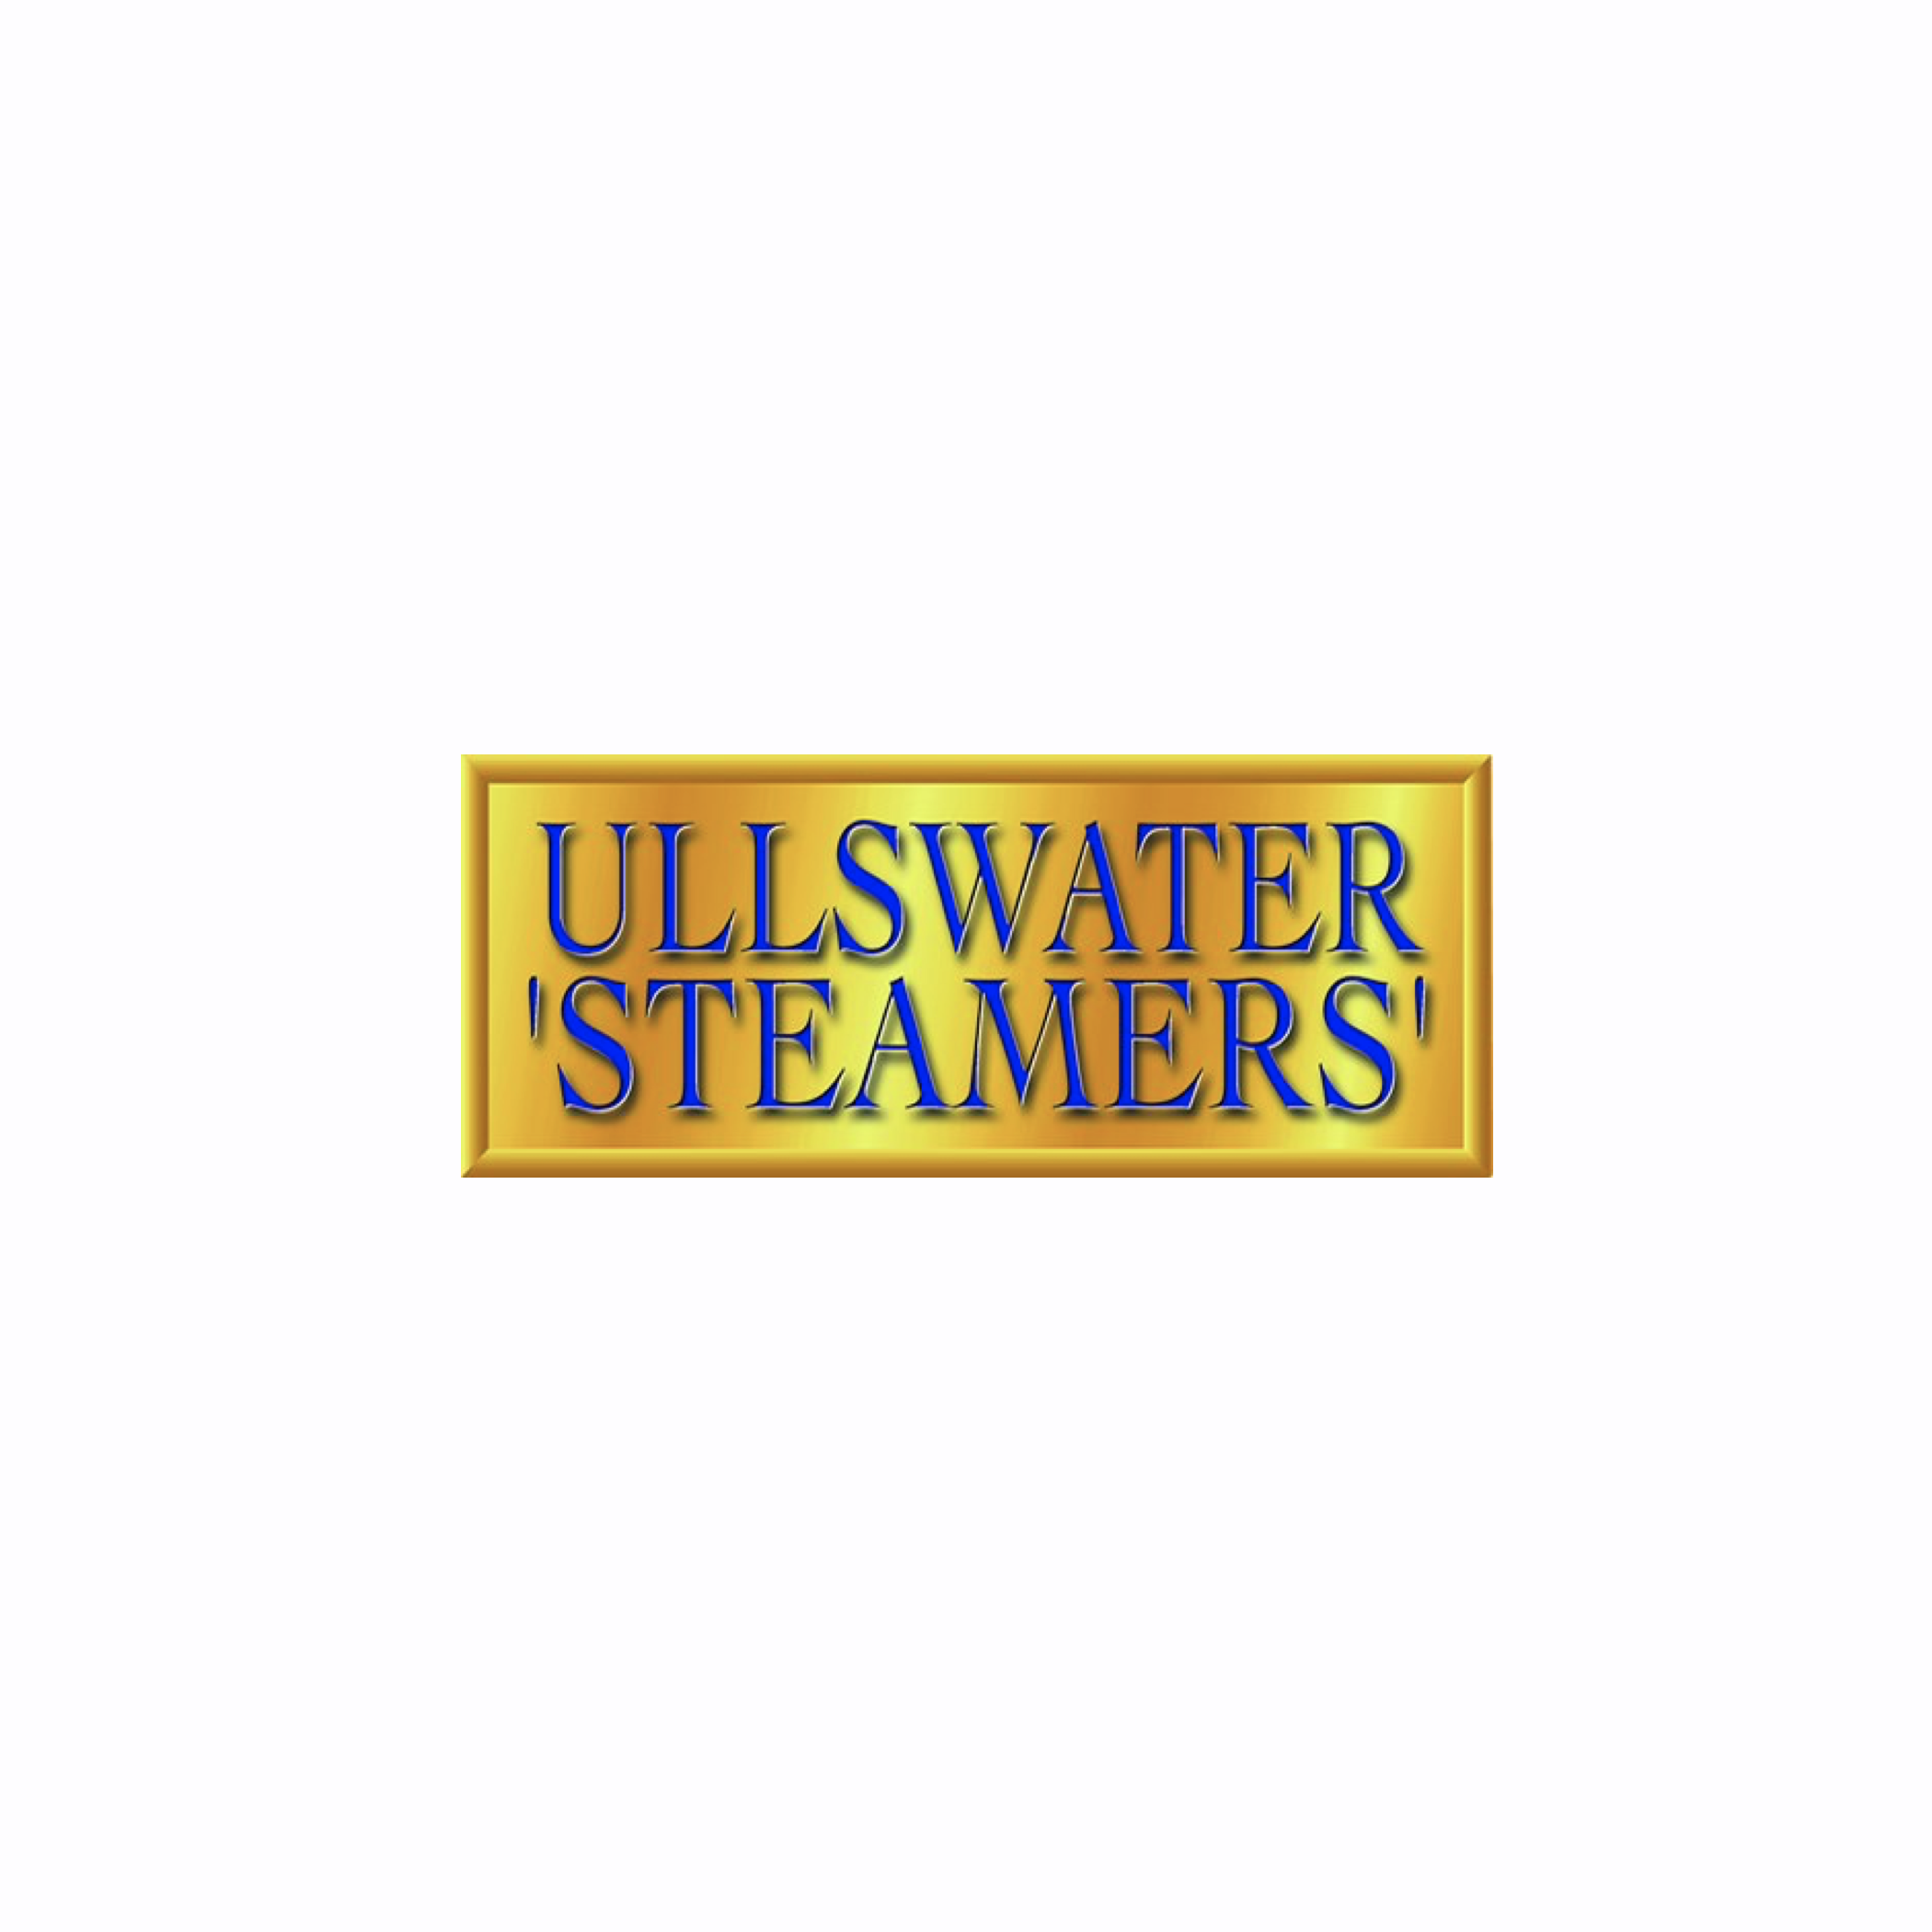 Ulswater Steamers.png